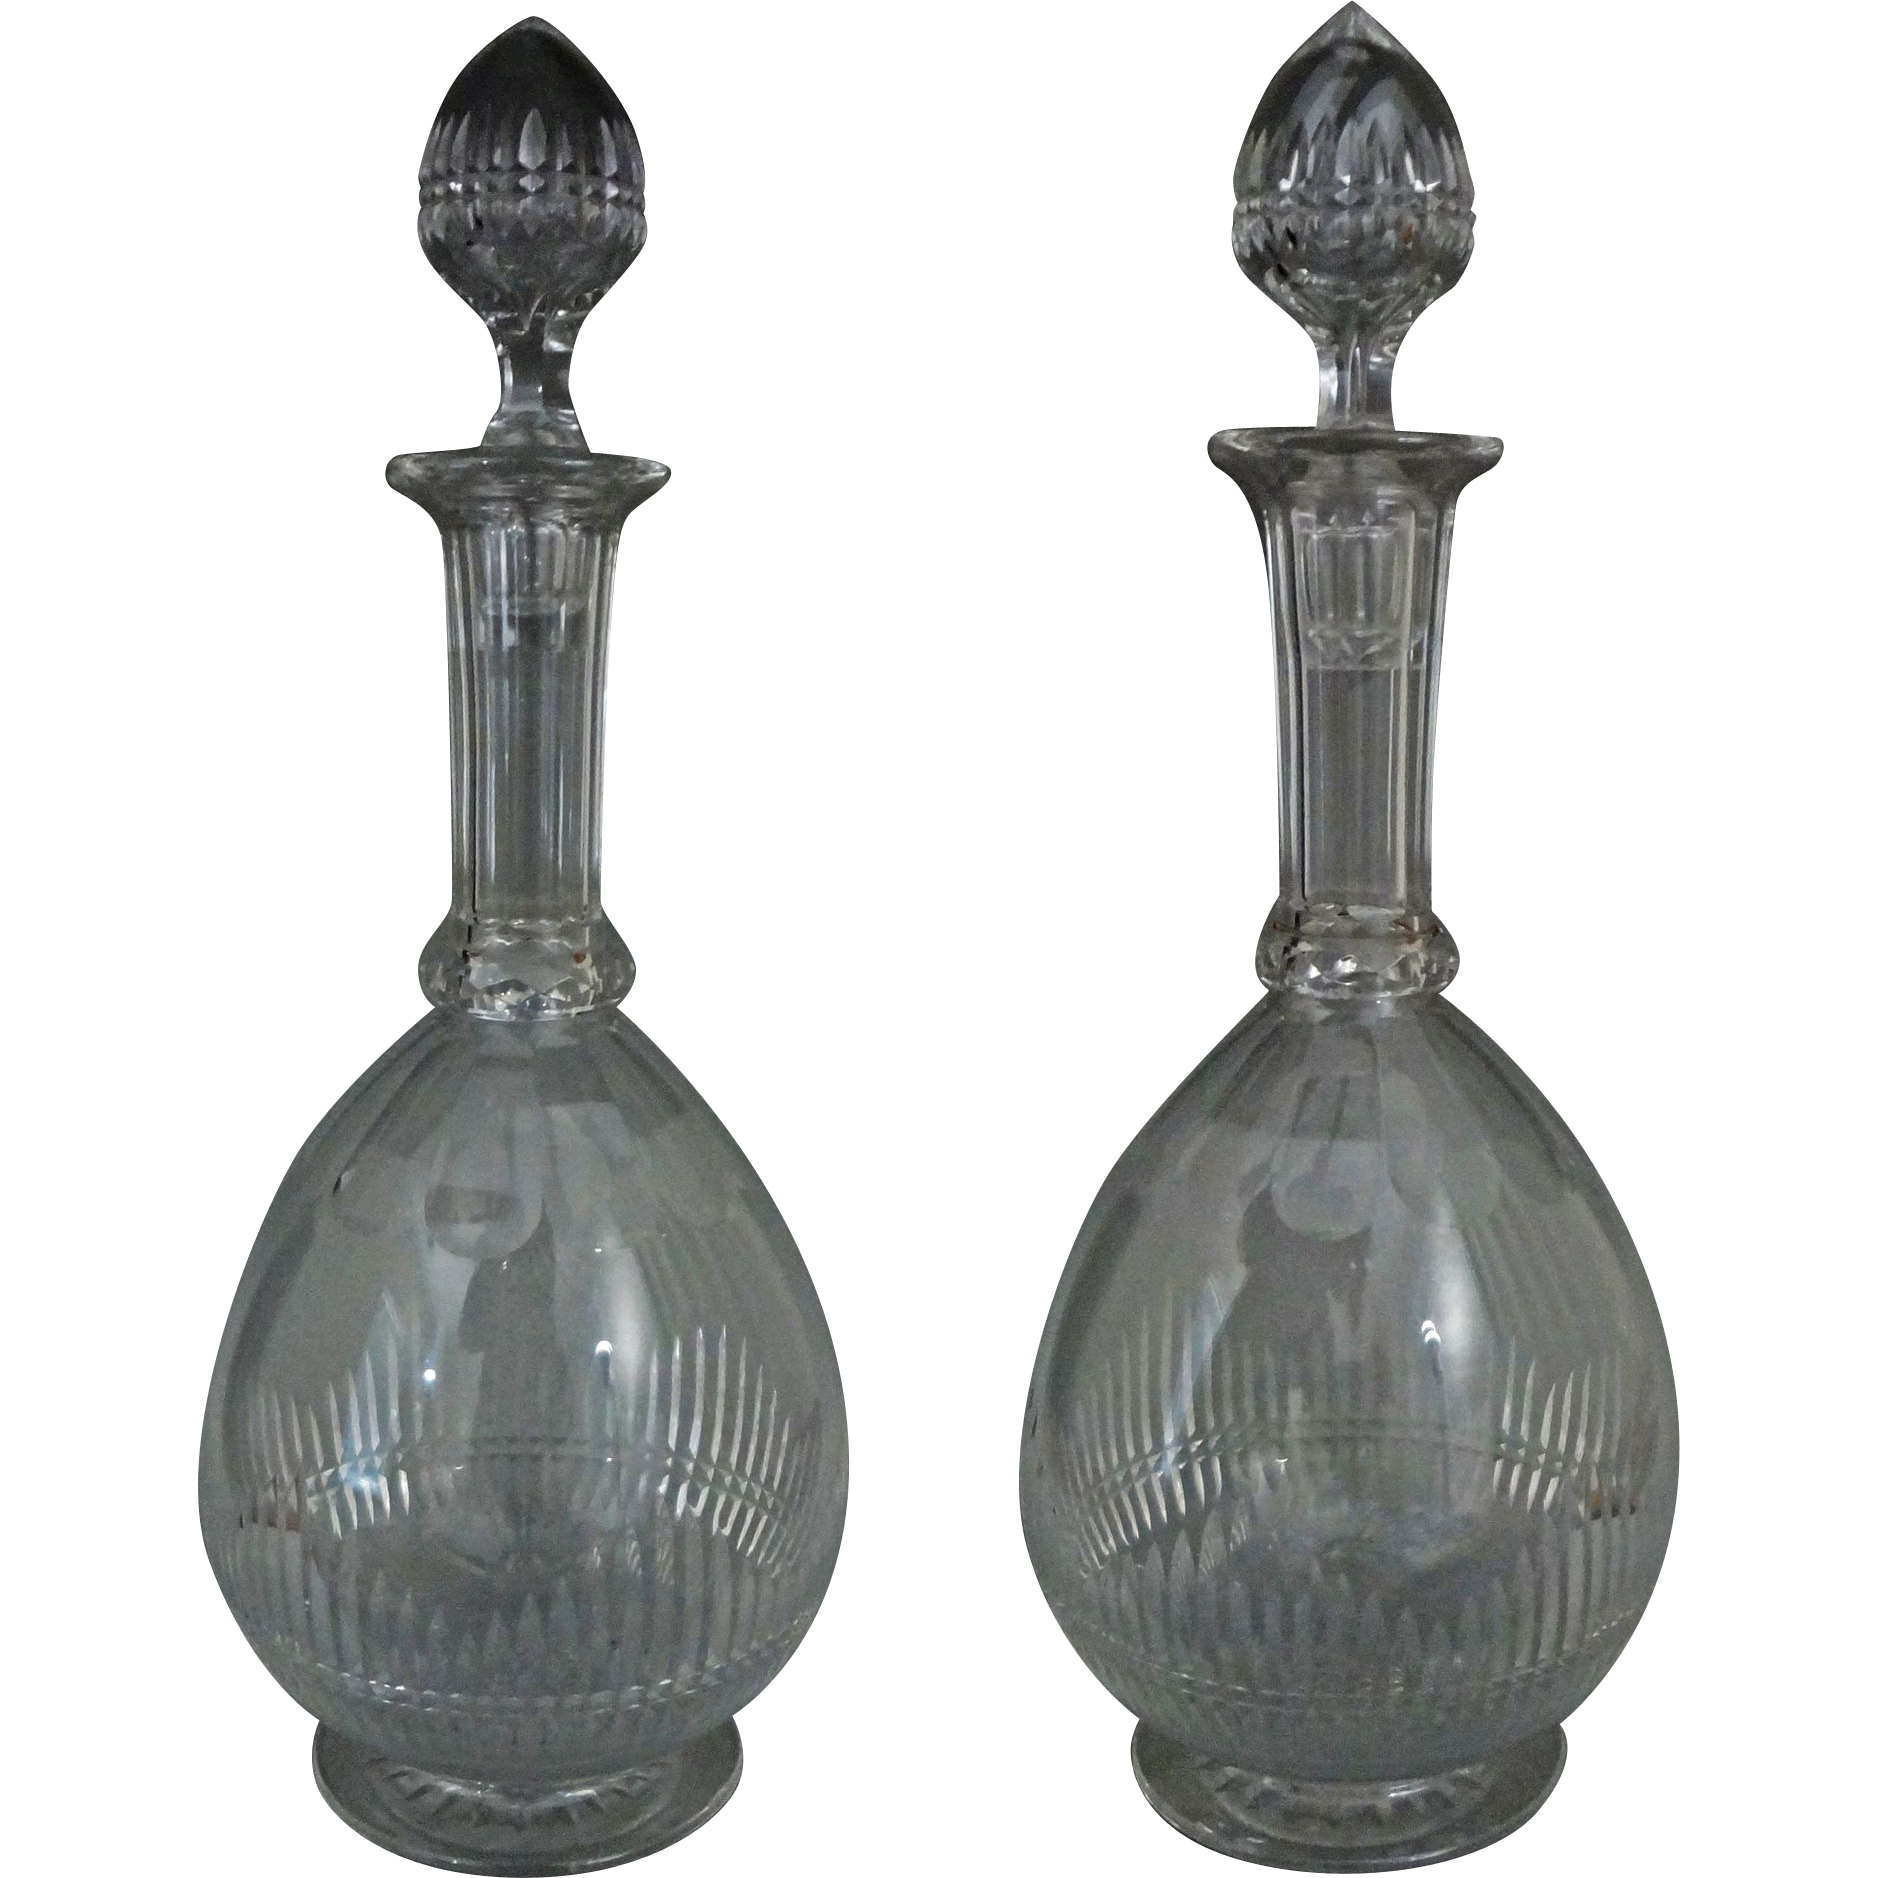 Pair Antique Cut Glass Footed Decanters Shaft and Globe and Hollow Stoppers - c. 19th Century, England